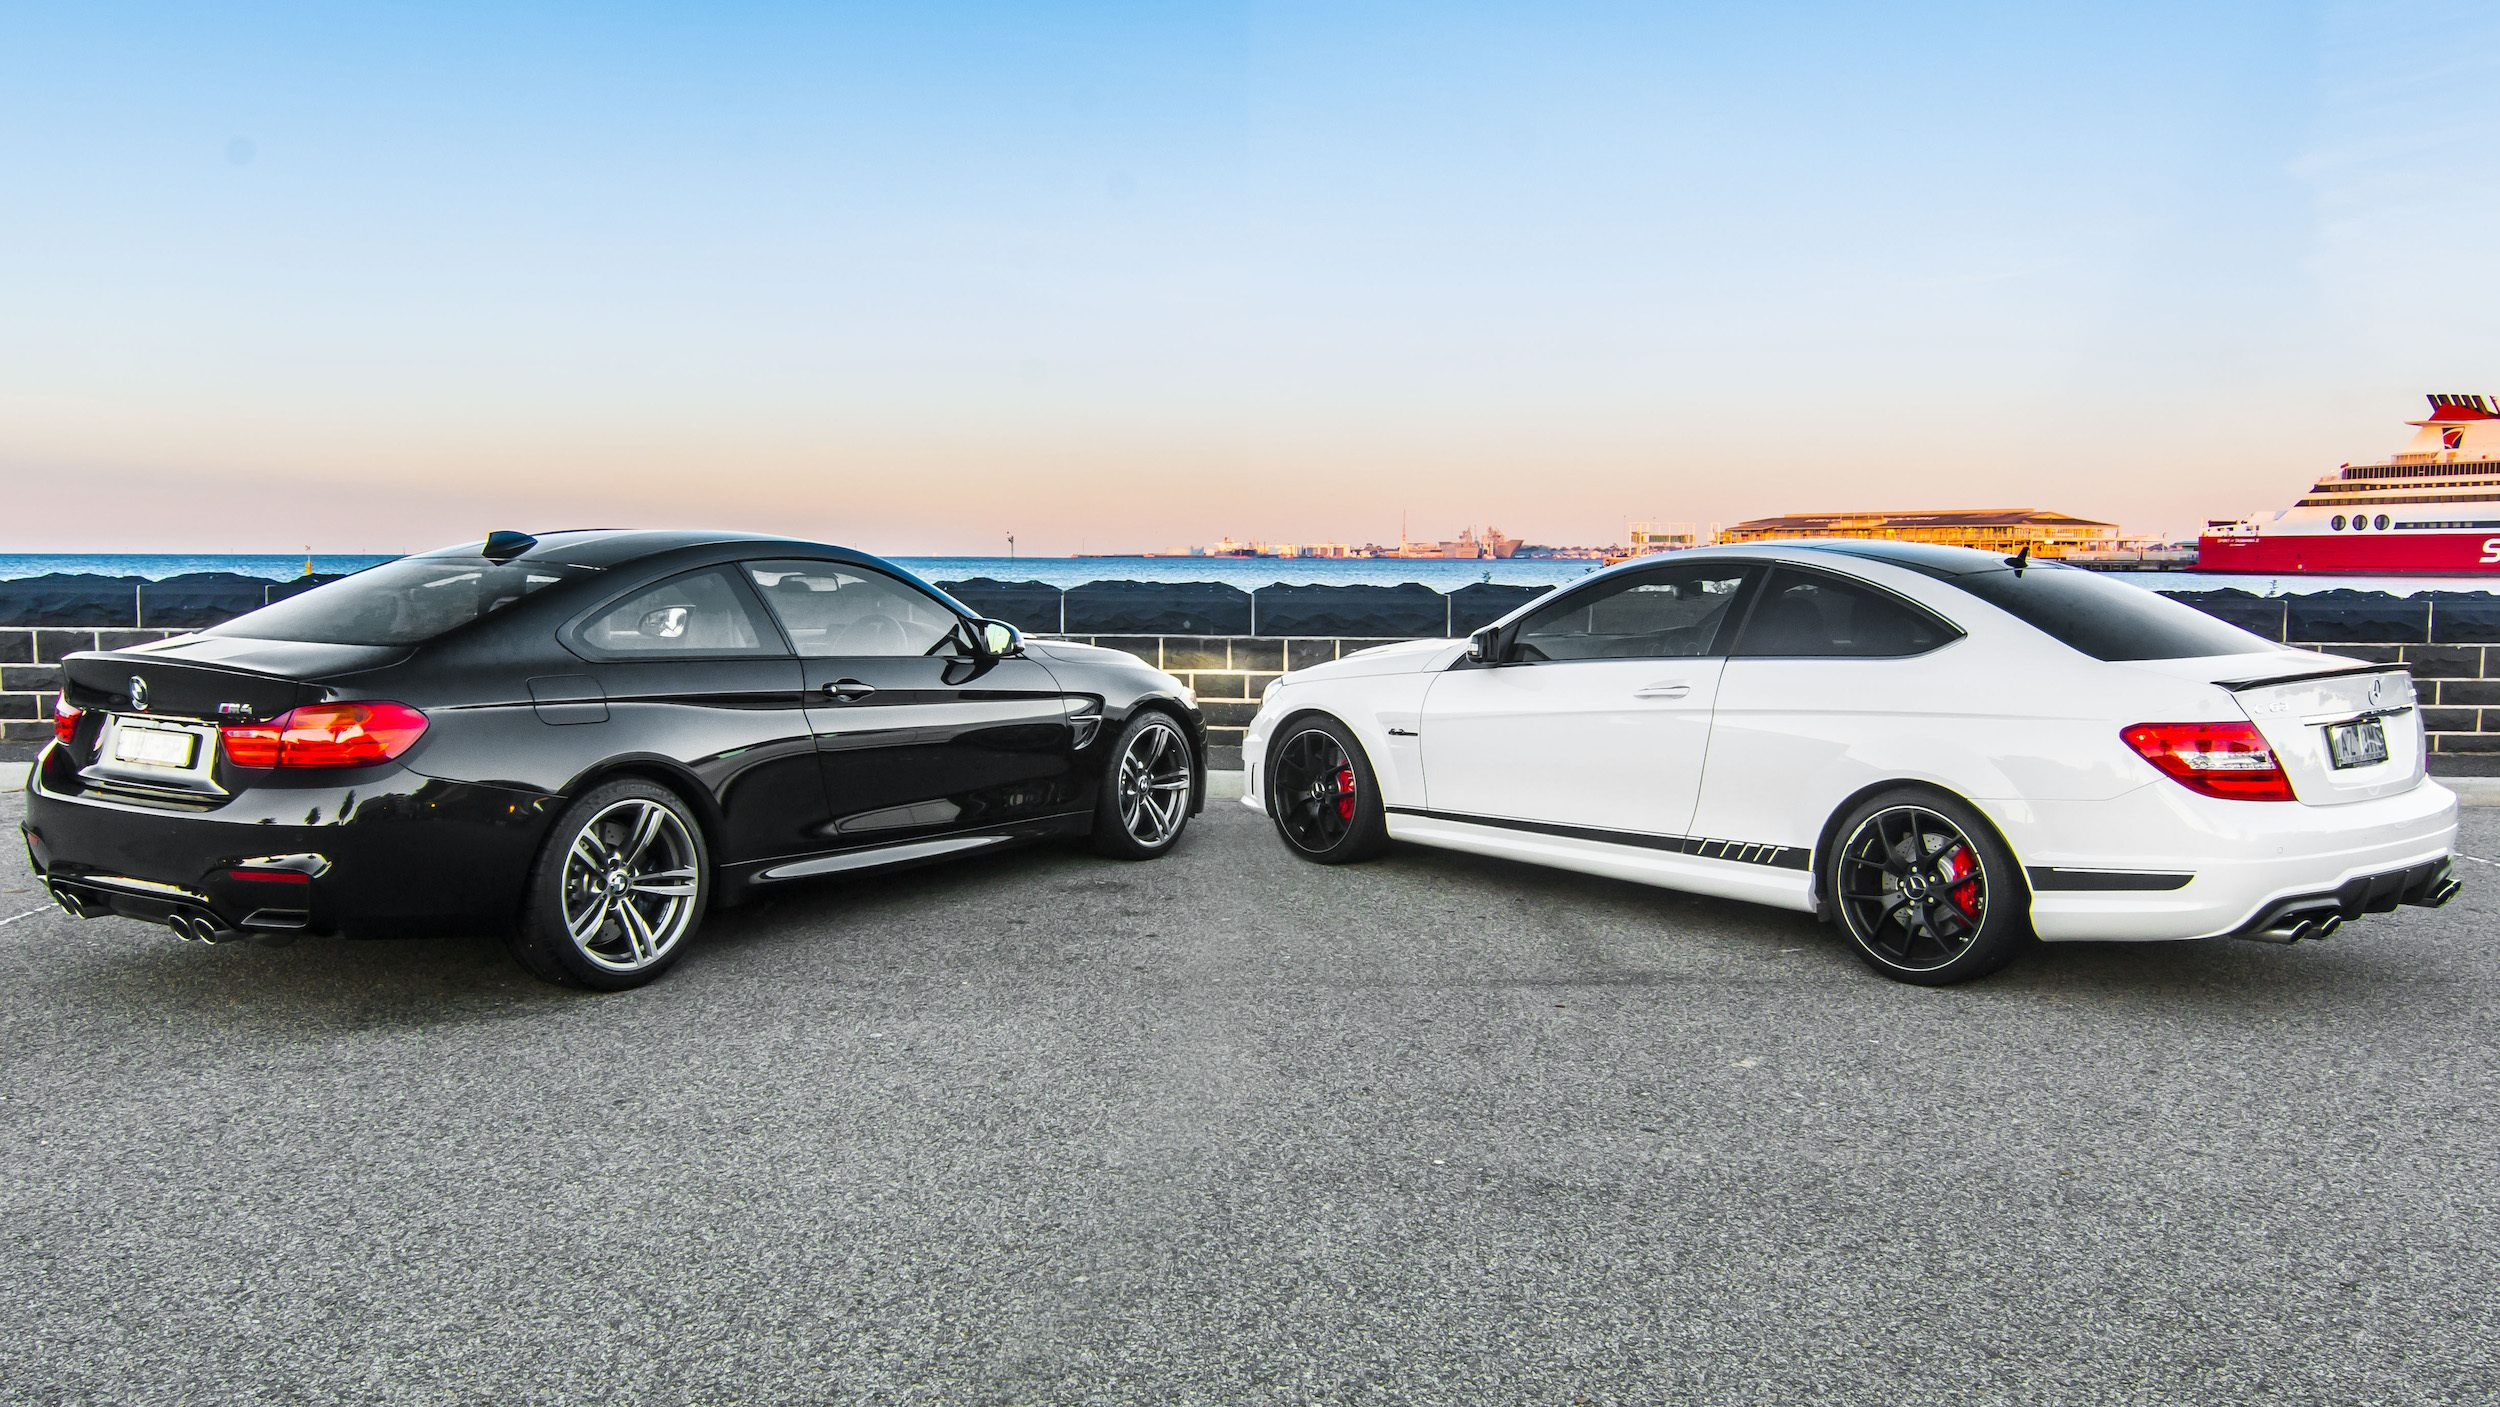 Bmw M4 Vs Mercedes C63 Amg Edition 507 Comparison Review Page 4